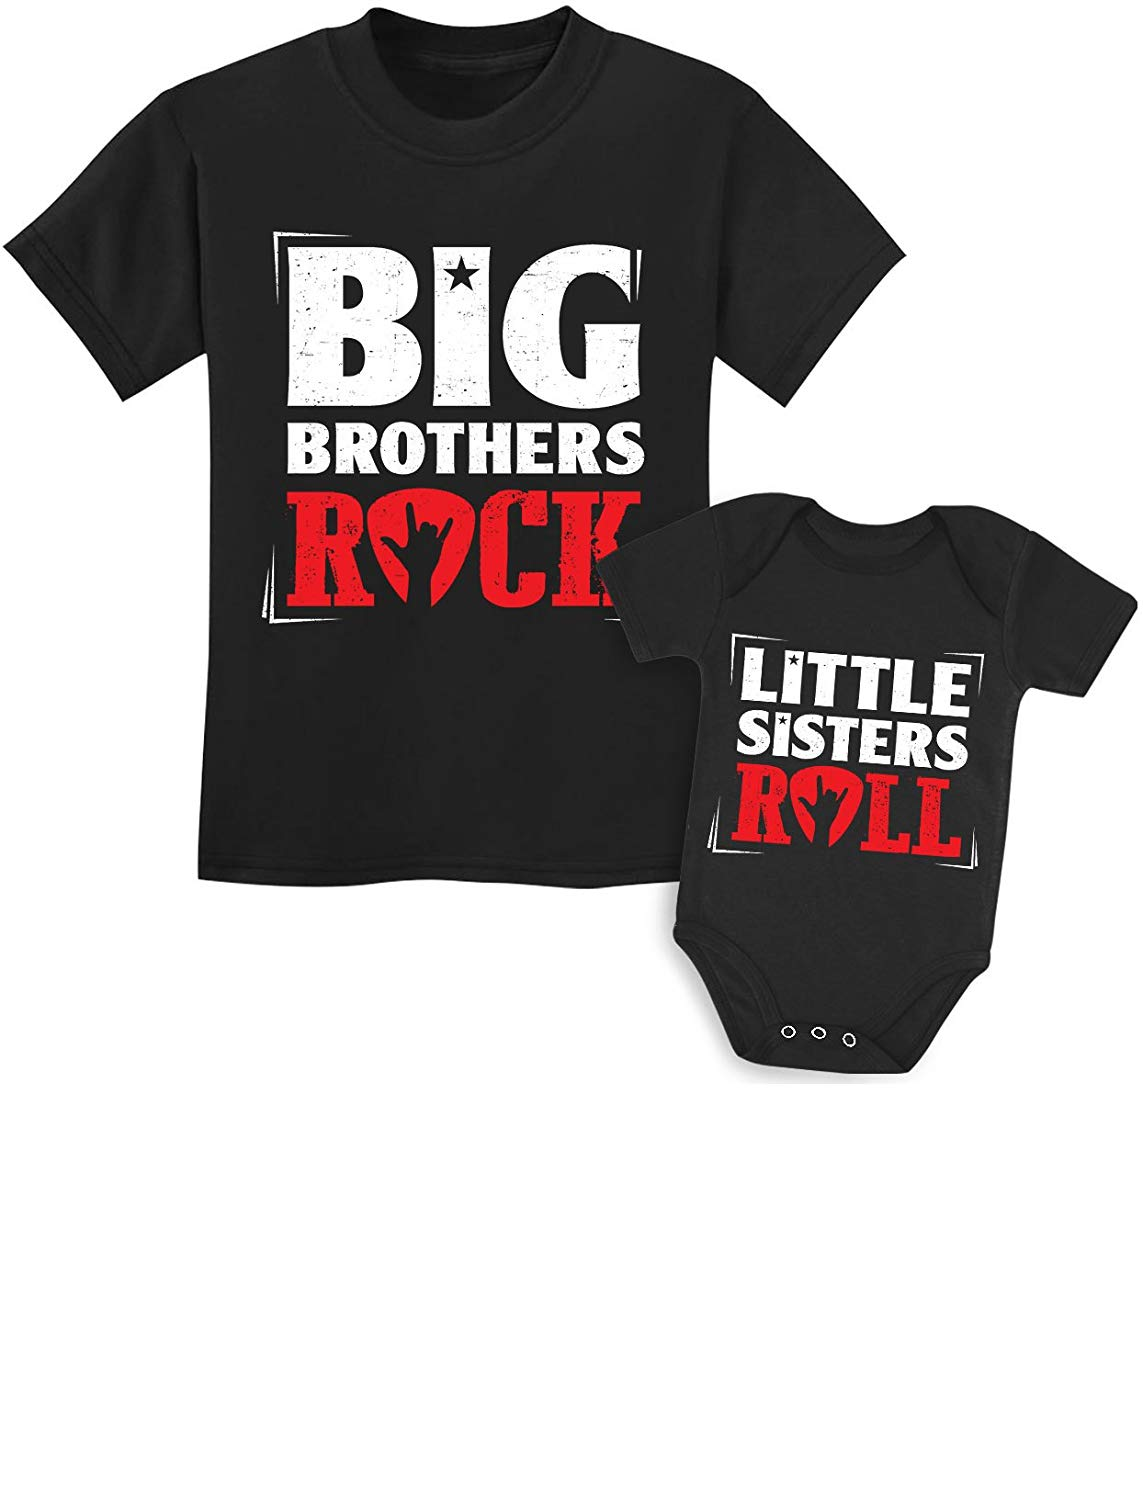 Tstars Rock N Roll Siblings Shirts For Big Brother/Sister Little Brother/Sister Set